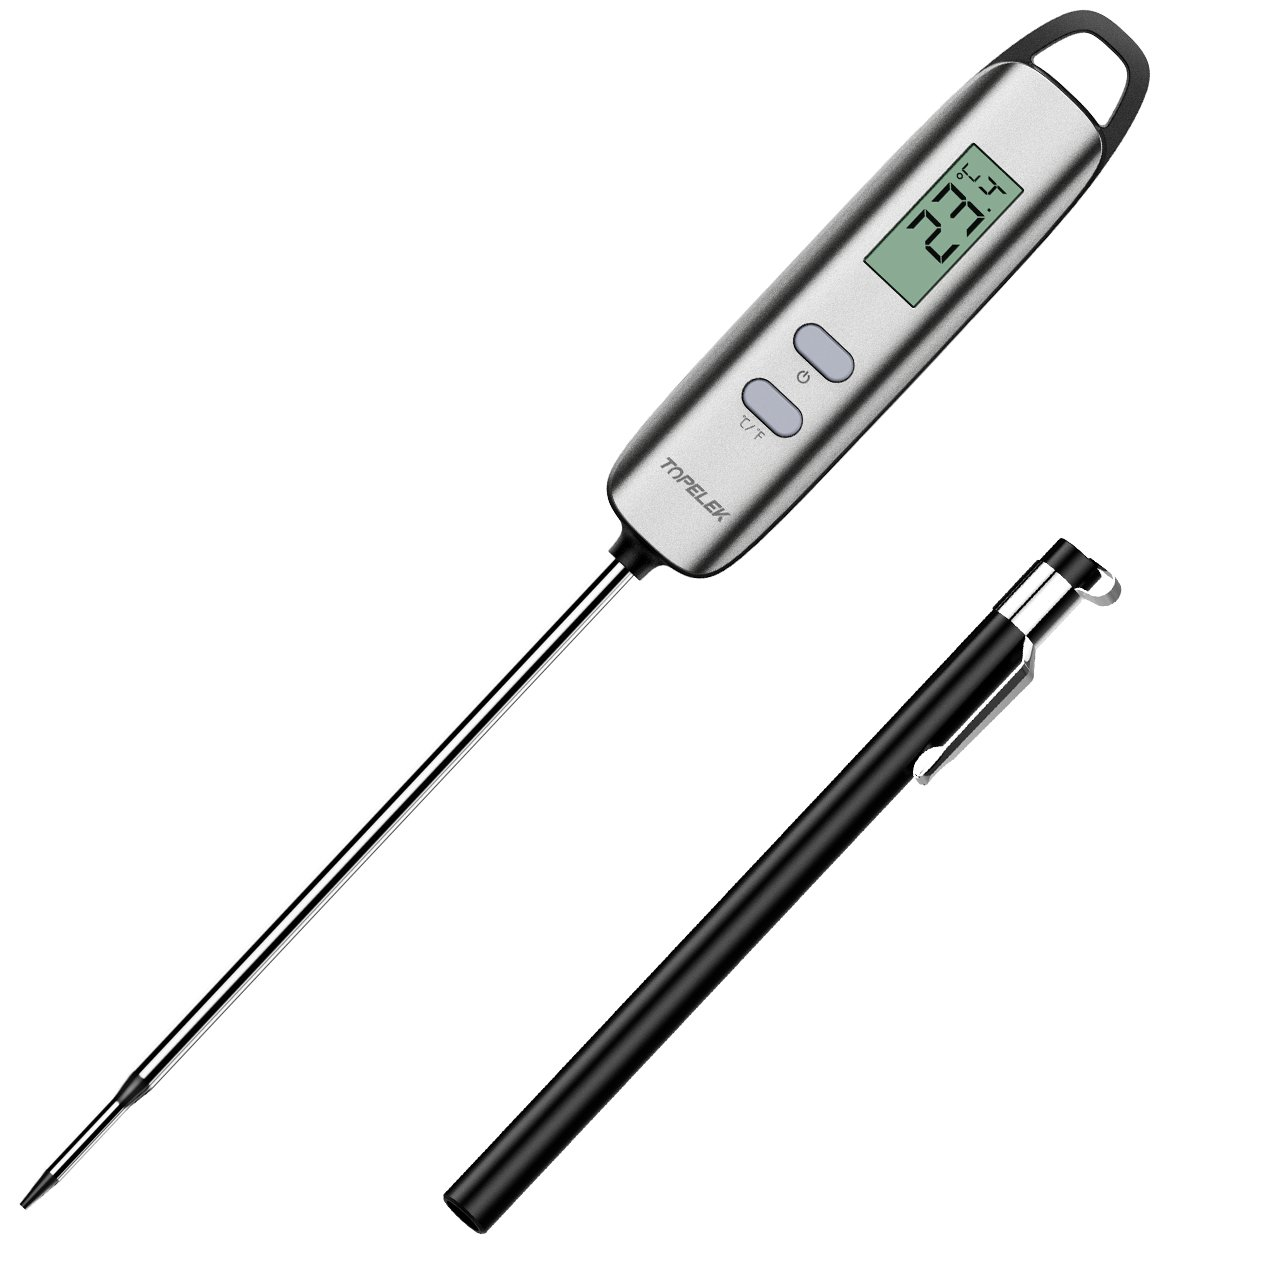 Topelek Bratenthermometer Grillthermometer im Test